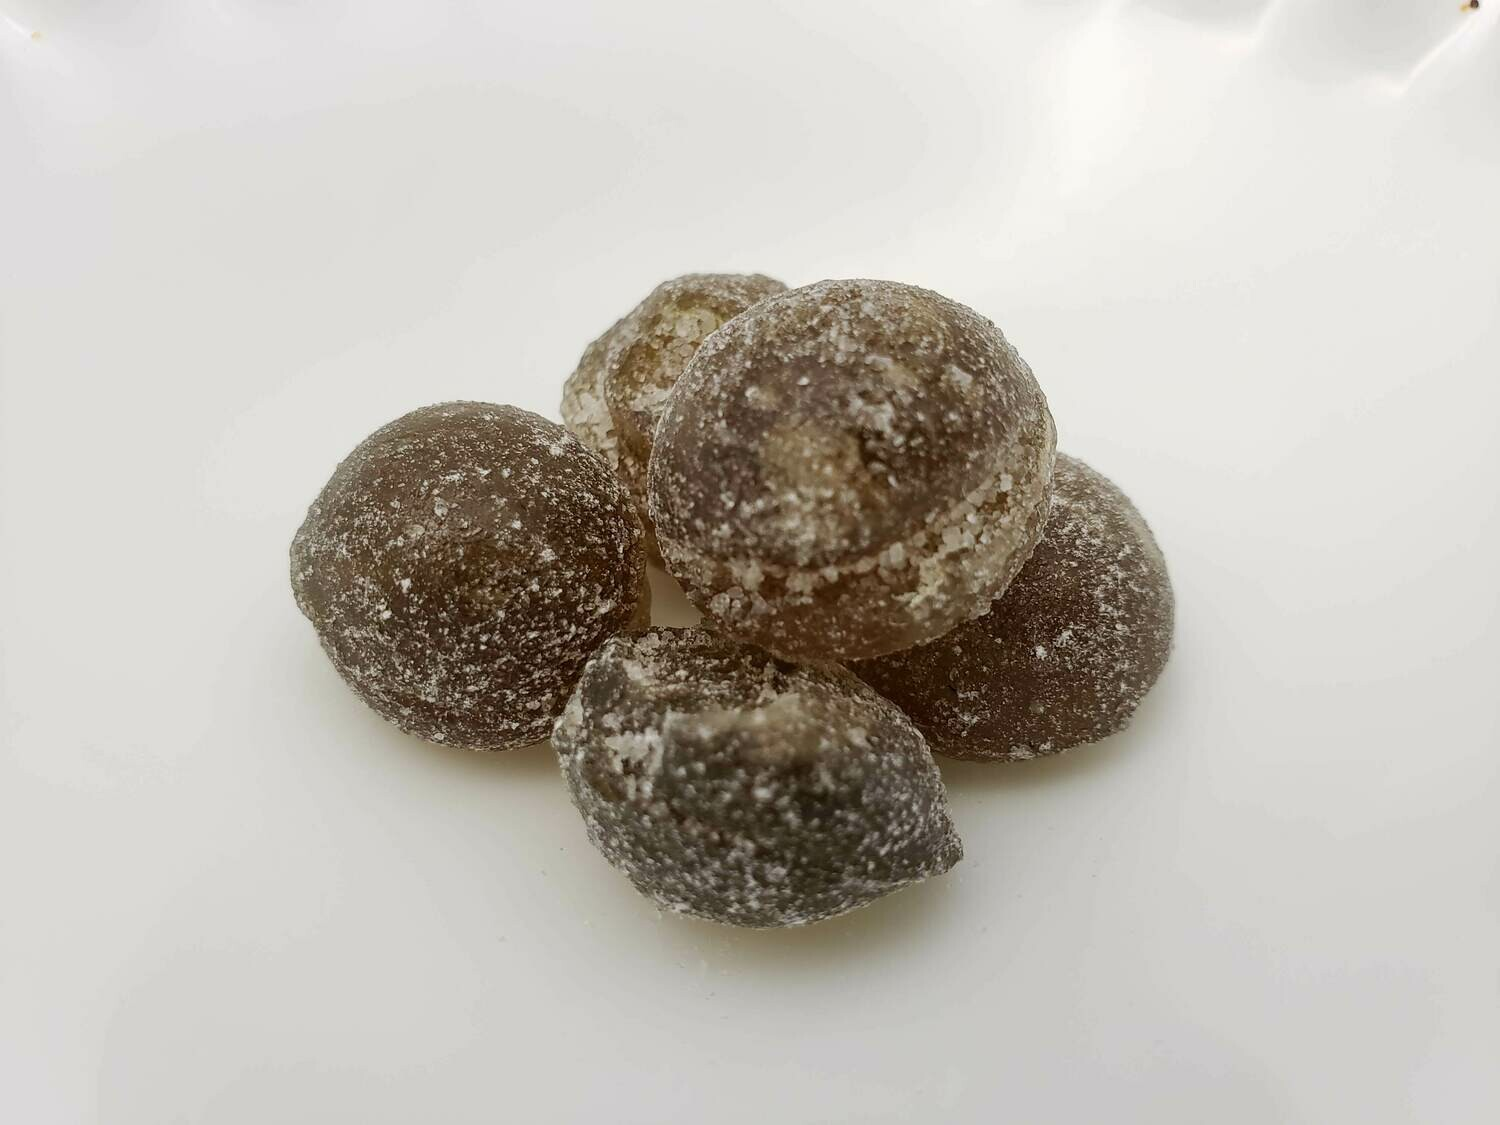 Old-Fashioned Licorice Candy